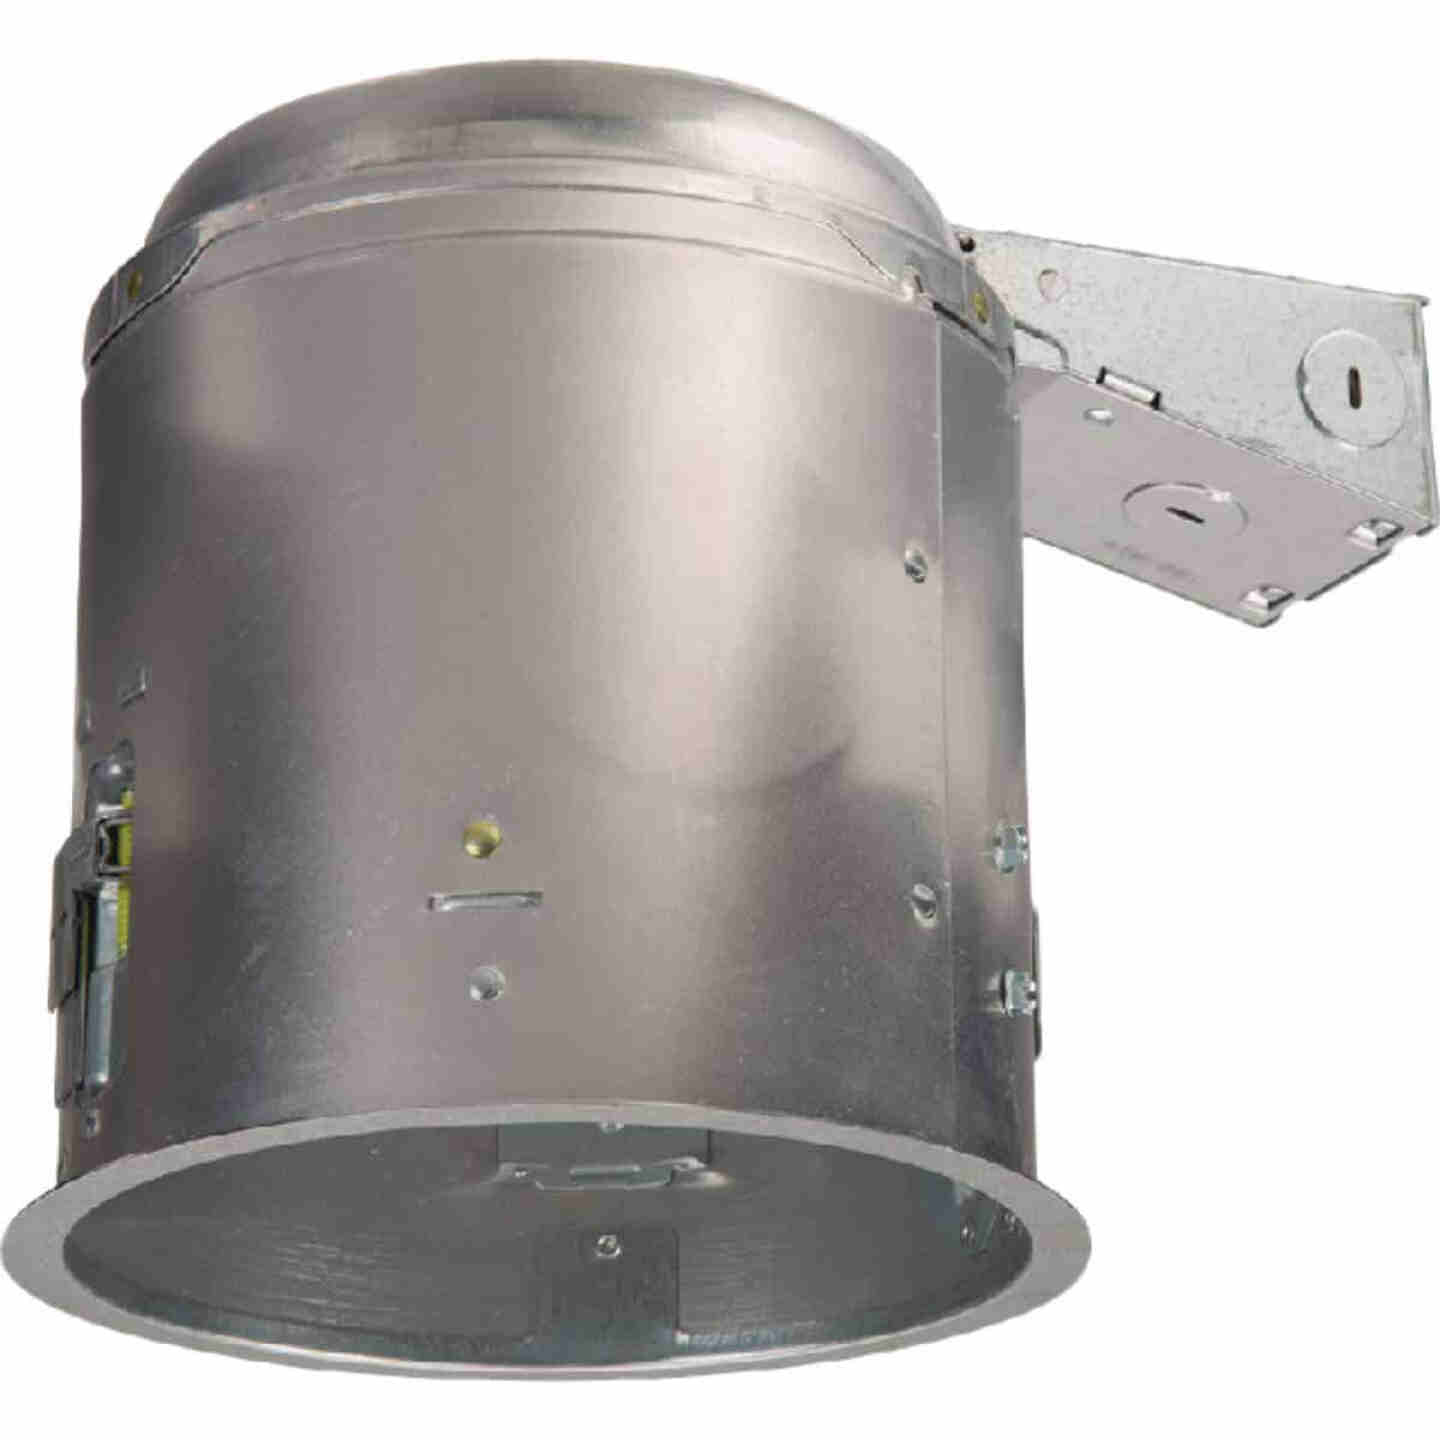 Halo Air-Tite 6 In. Remodel IC/Non-IC Rated Recessed Light Fixture Image 1